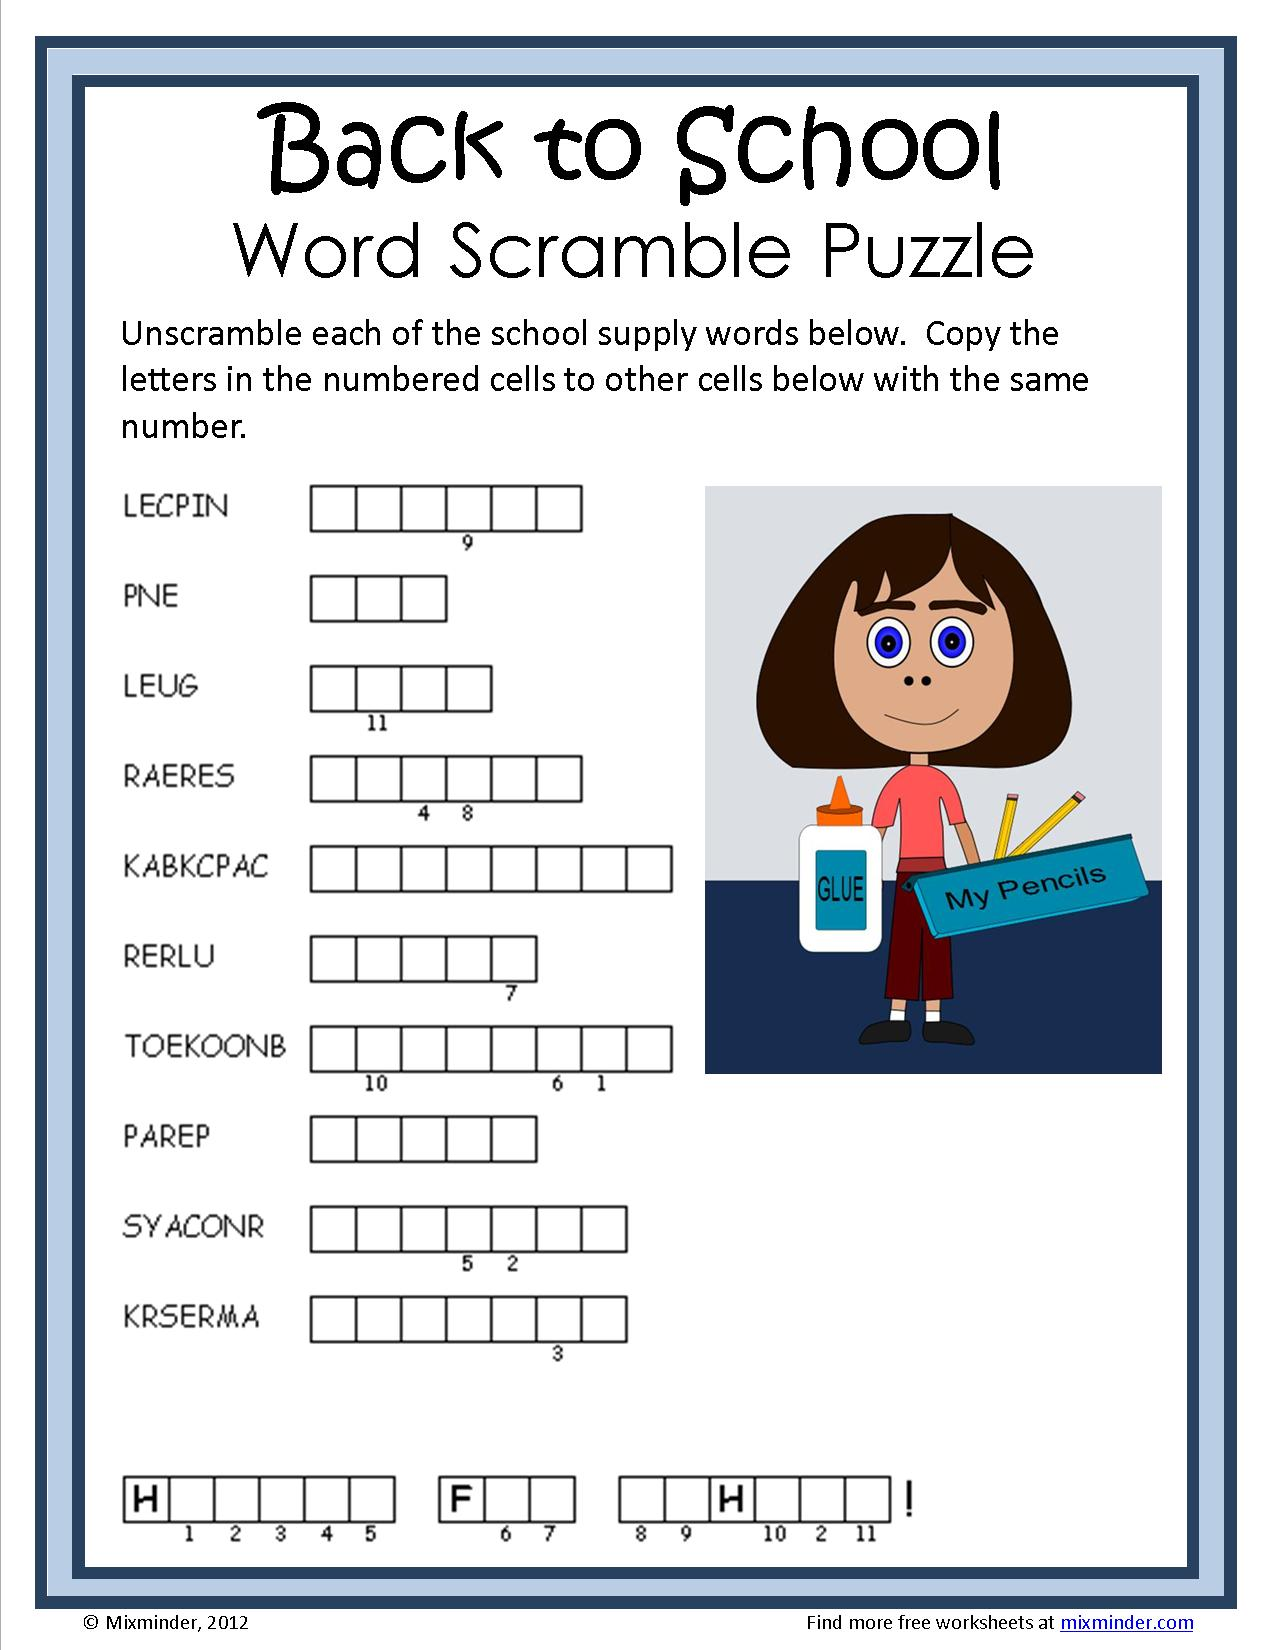 Back to School Word Scramble Puzzle